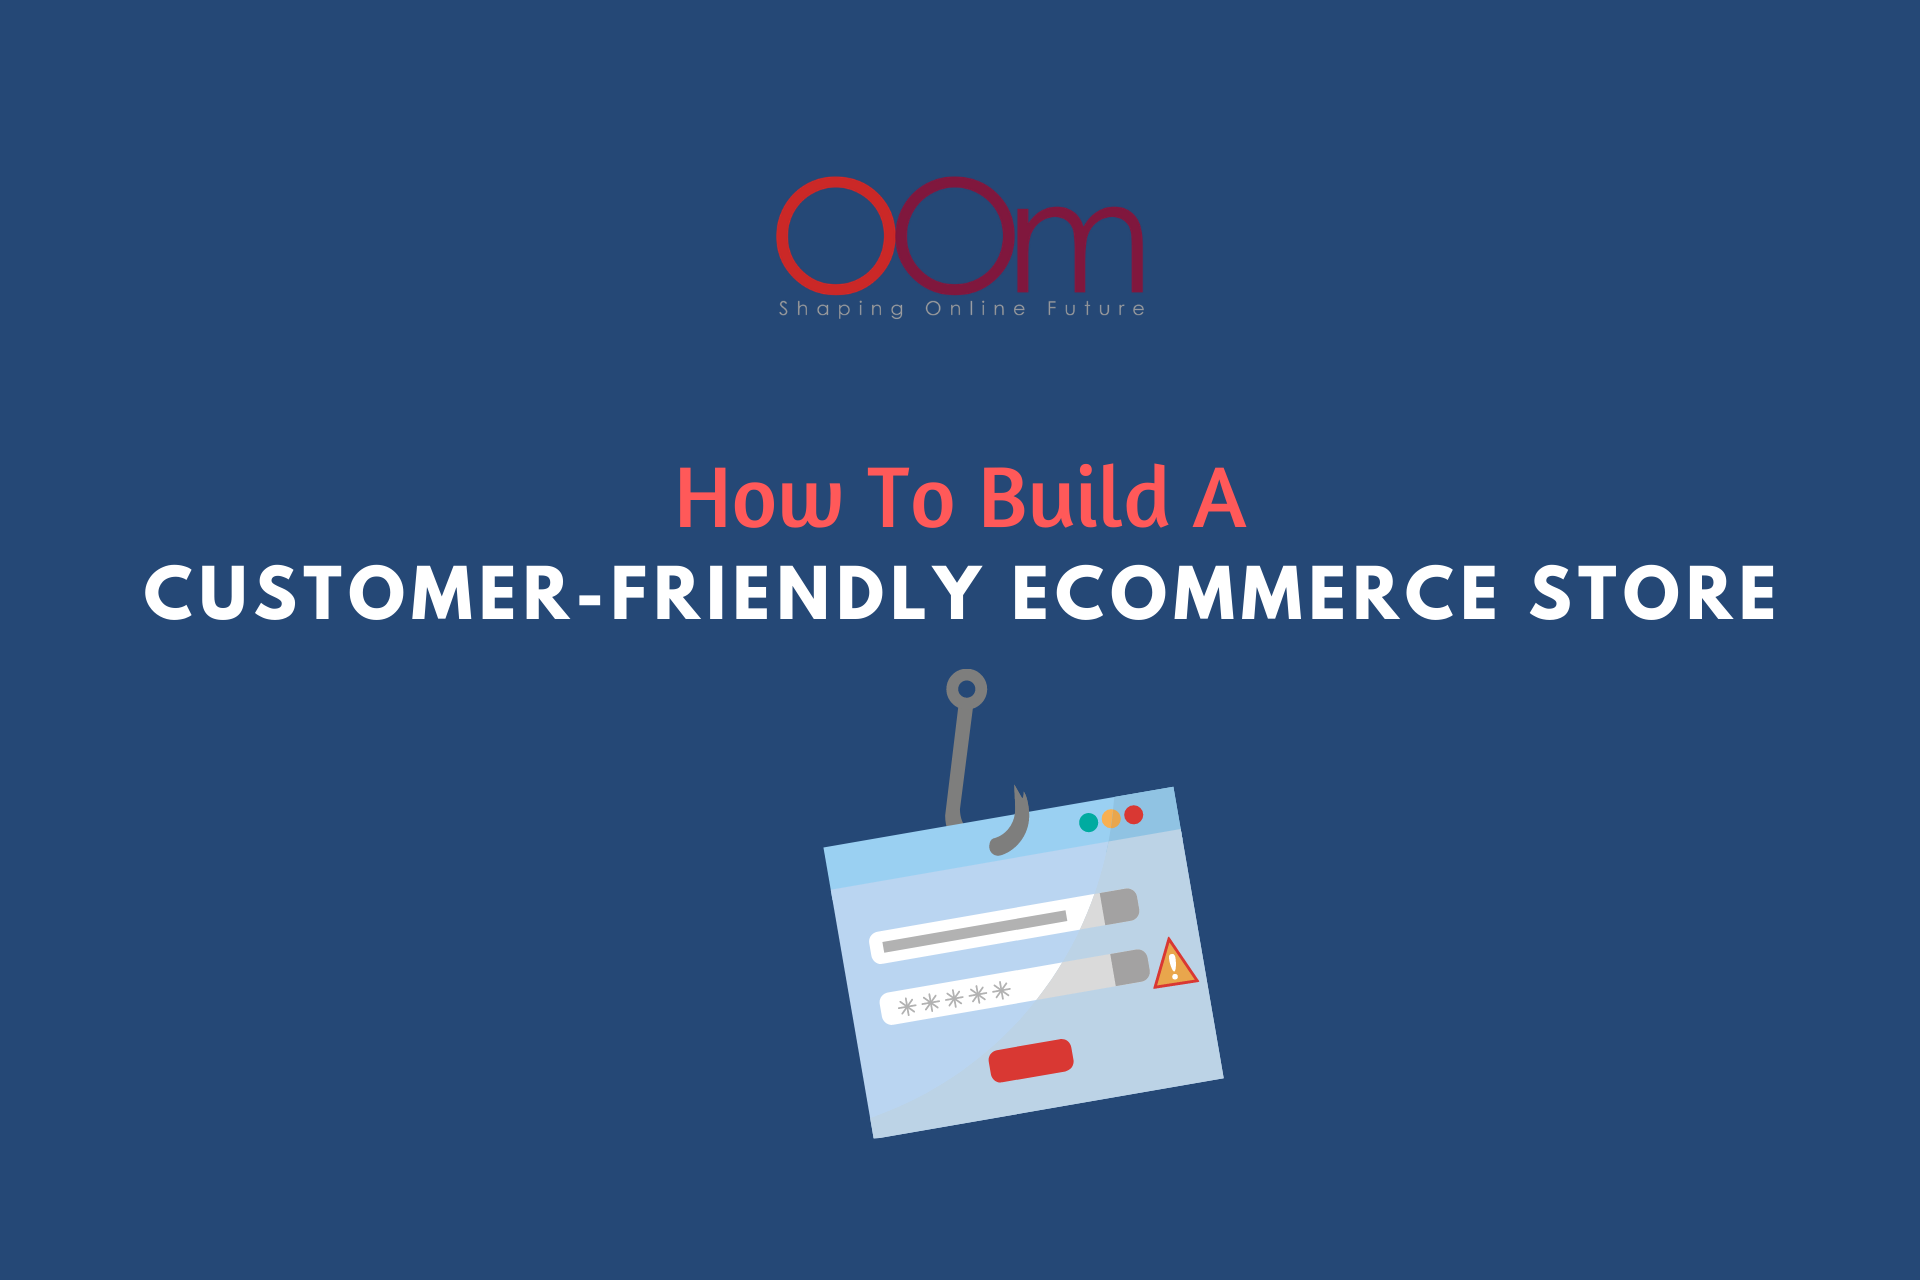 How To Build A Customer-Friendly eCommerce Store